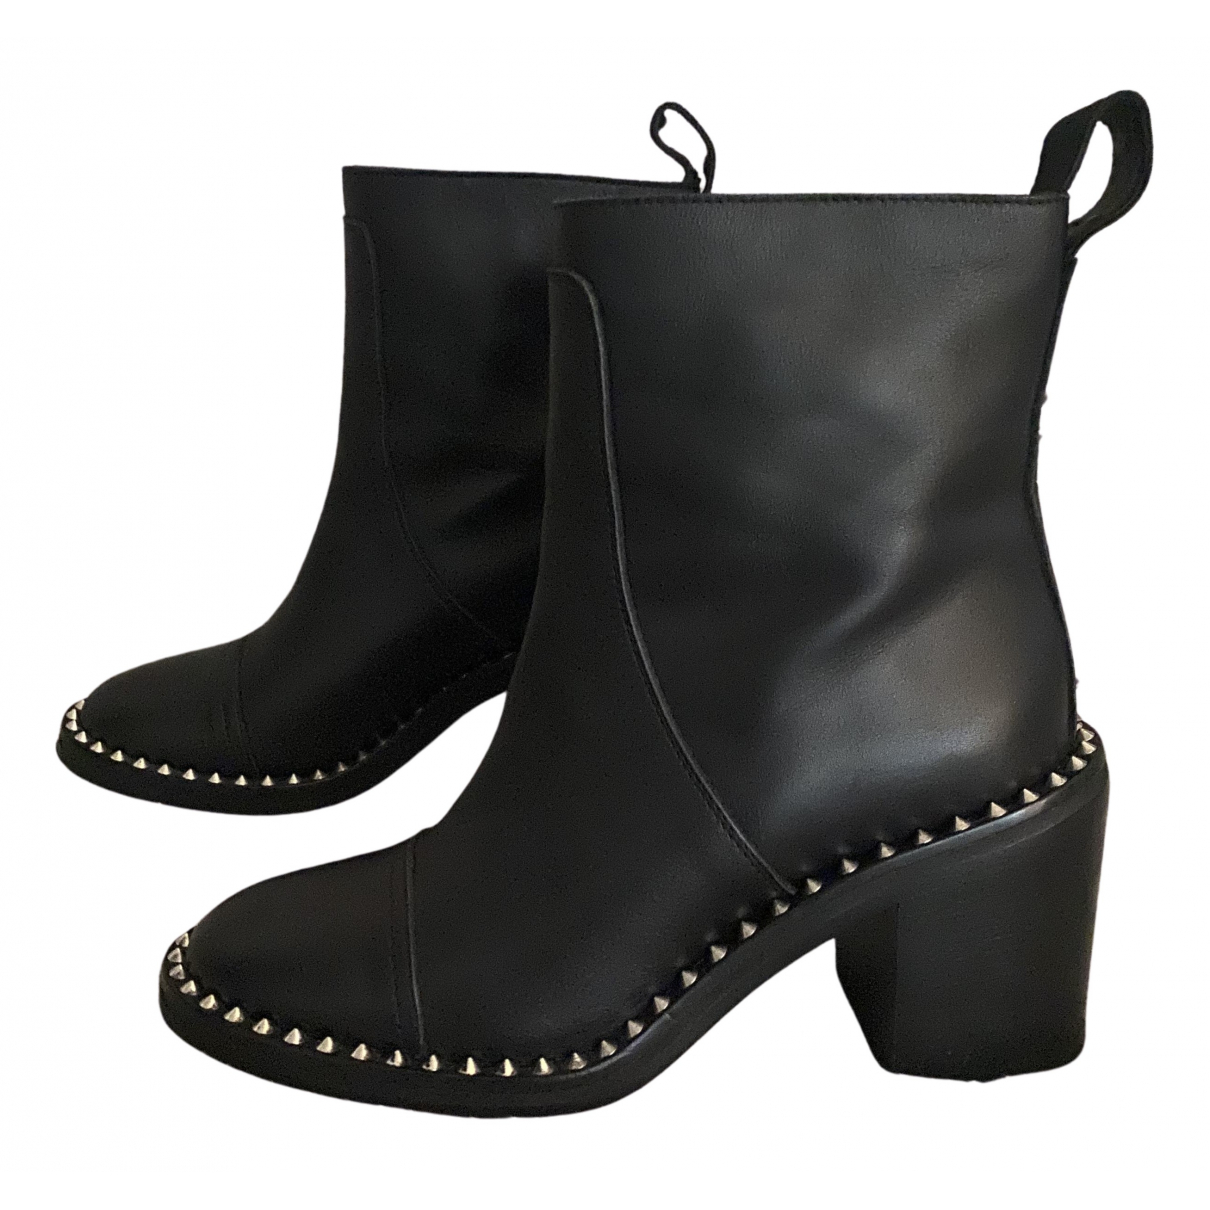 Zadig & Voltaire N Black Leather Ankle boots for Women 36 EU